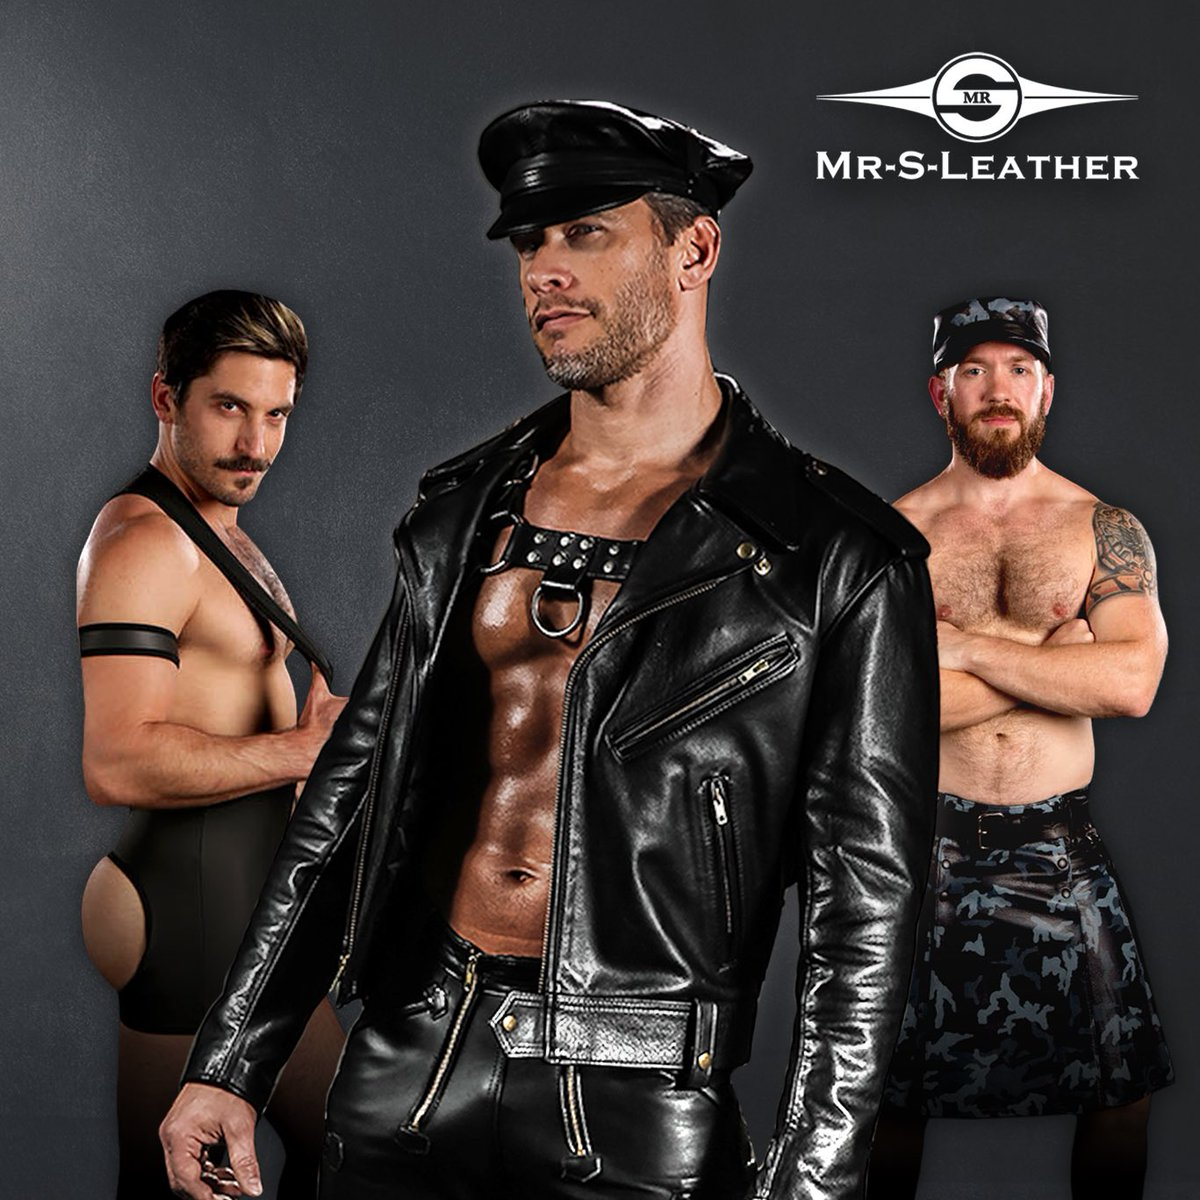 Terry Miller gay leather Tom of Finland Mr S